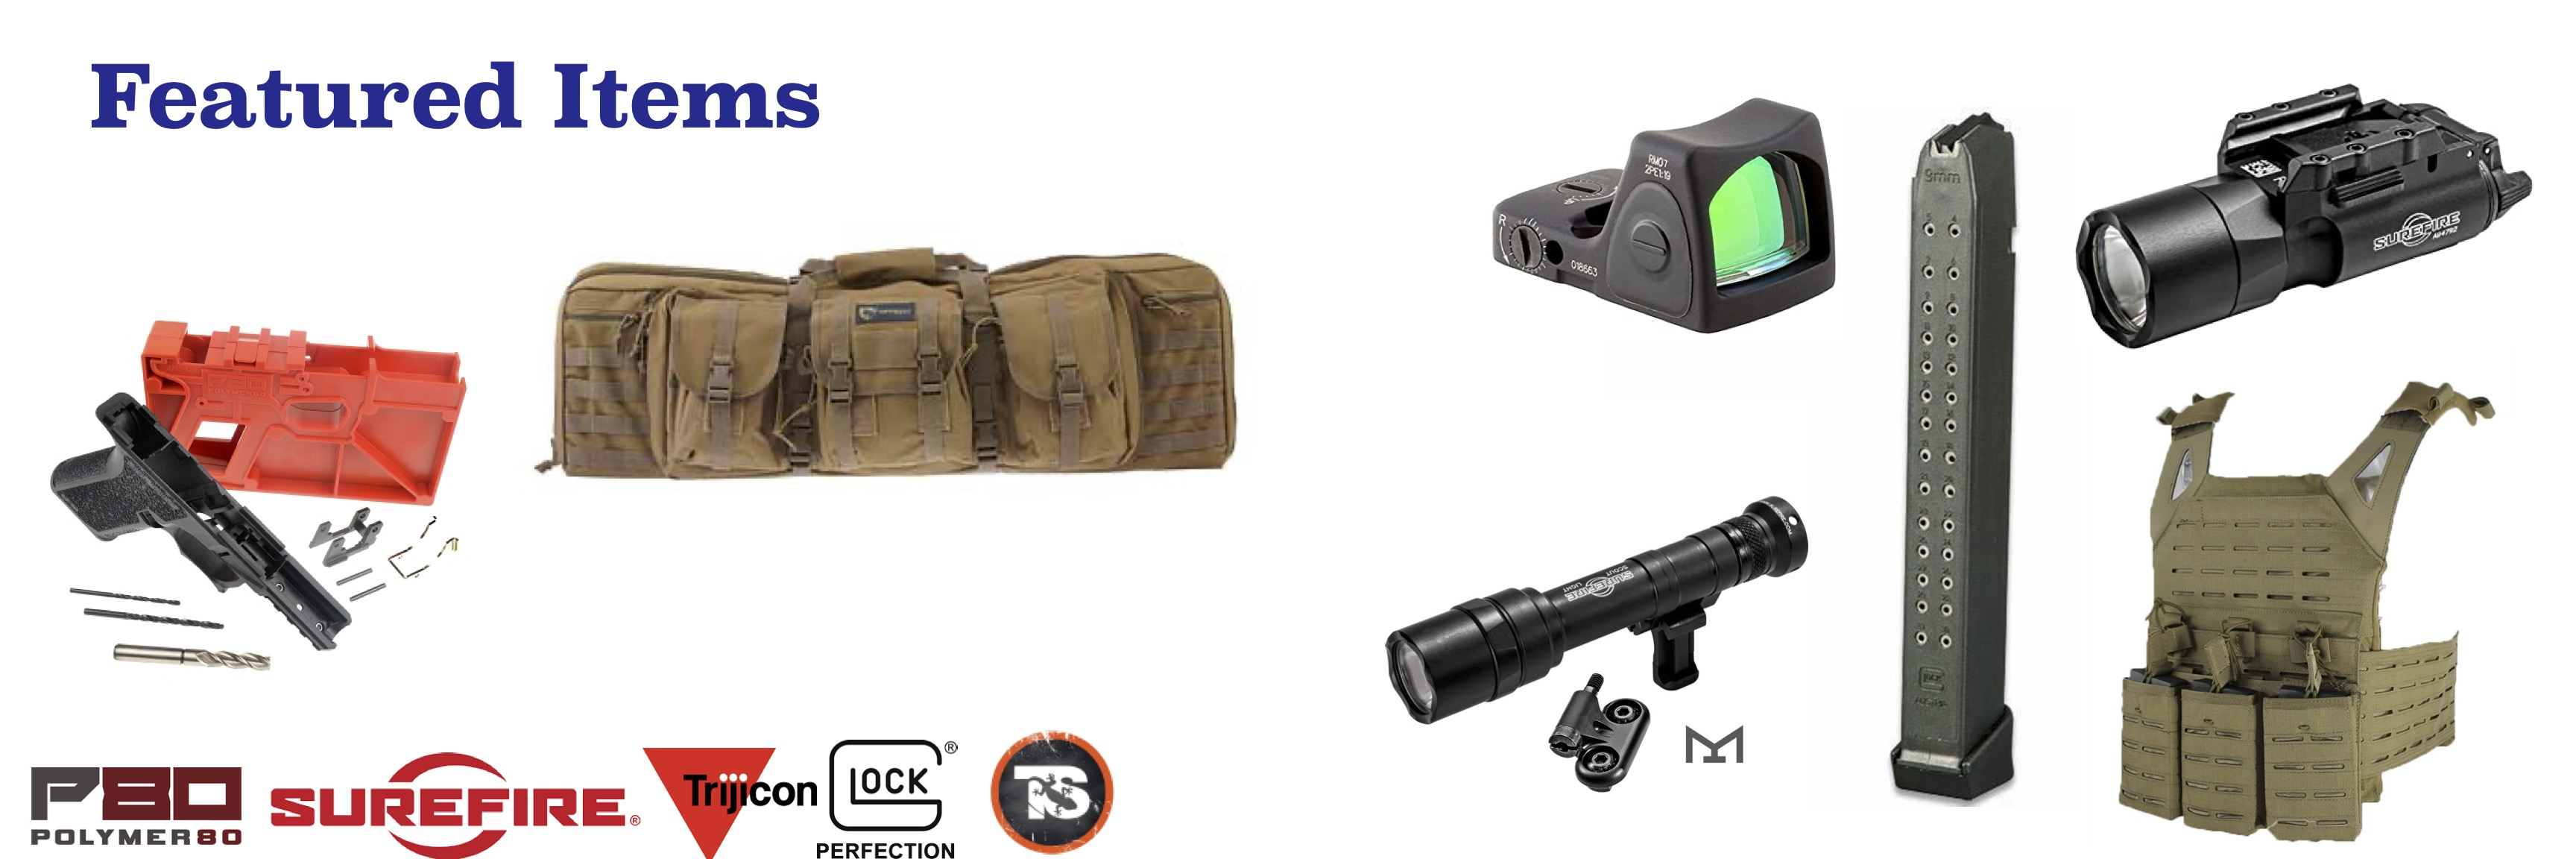 https://www.alltacticalus.com/pages/featured-items